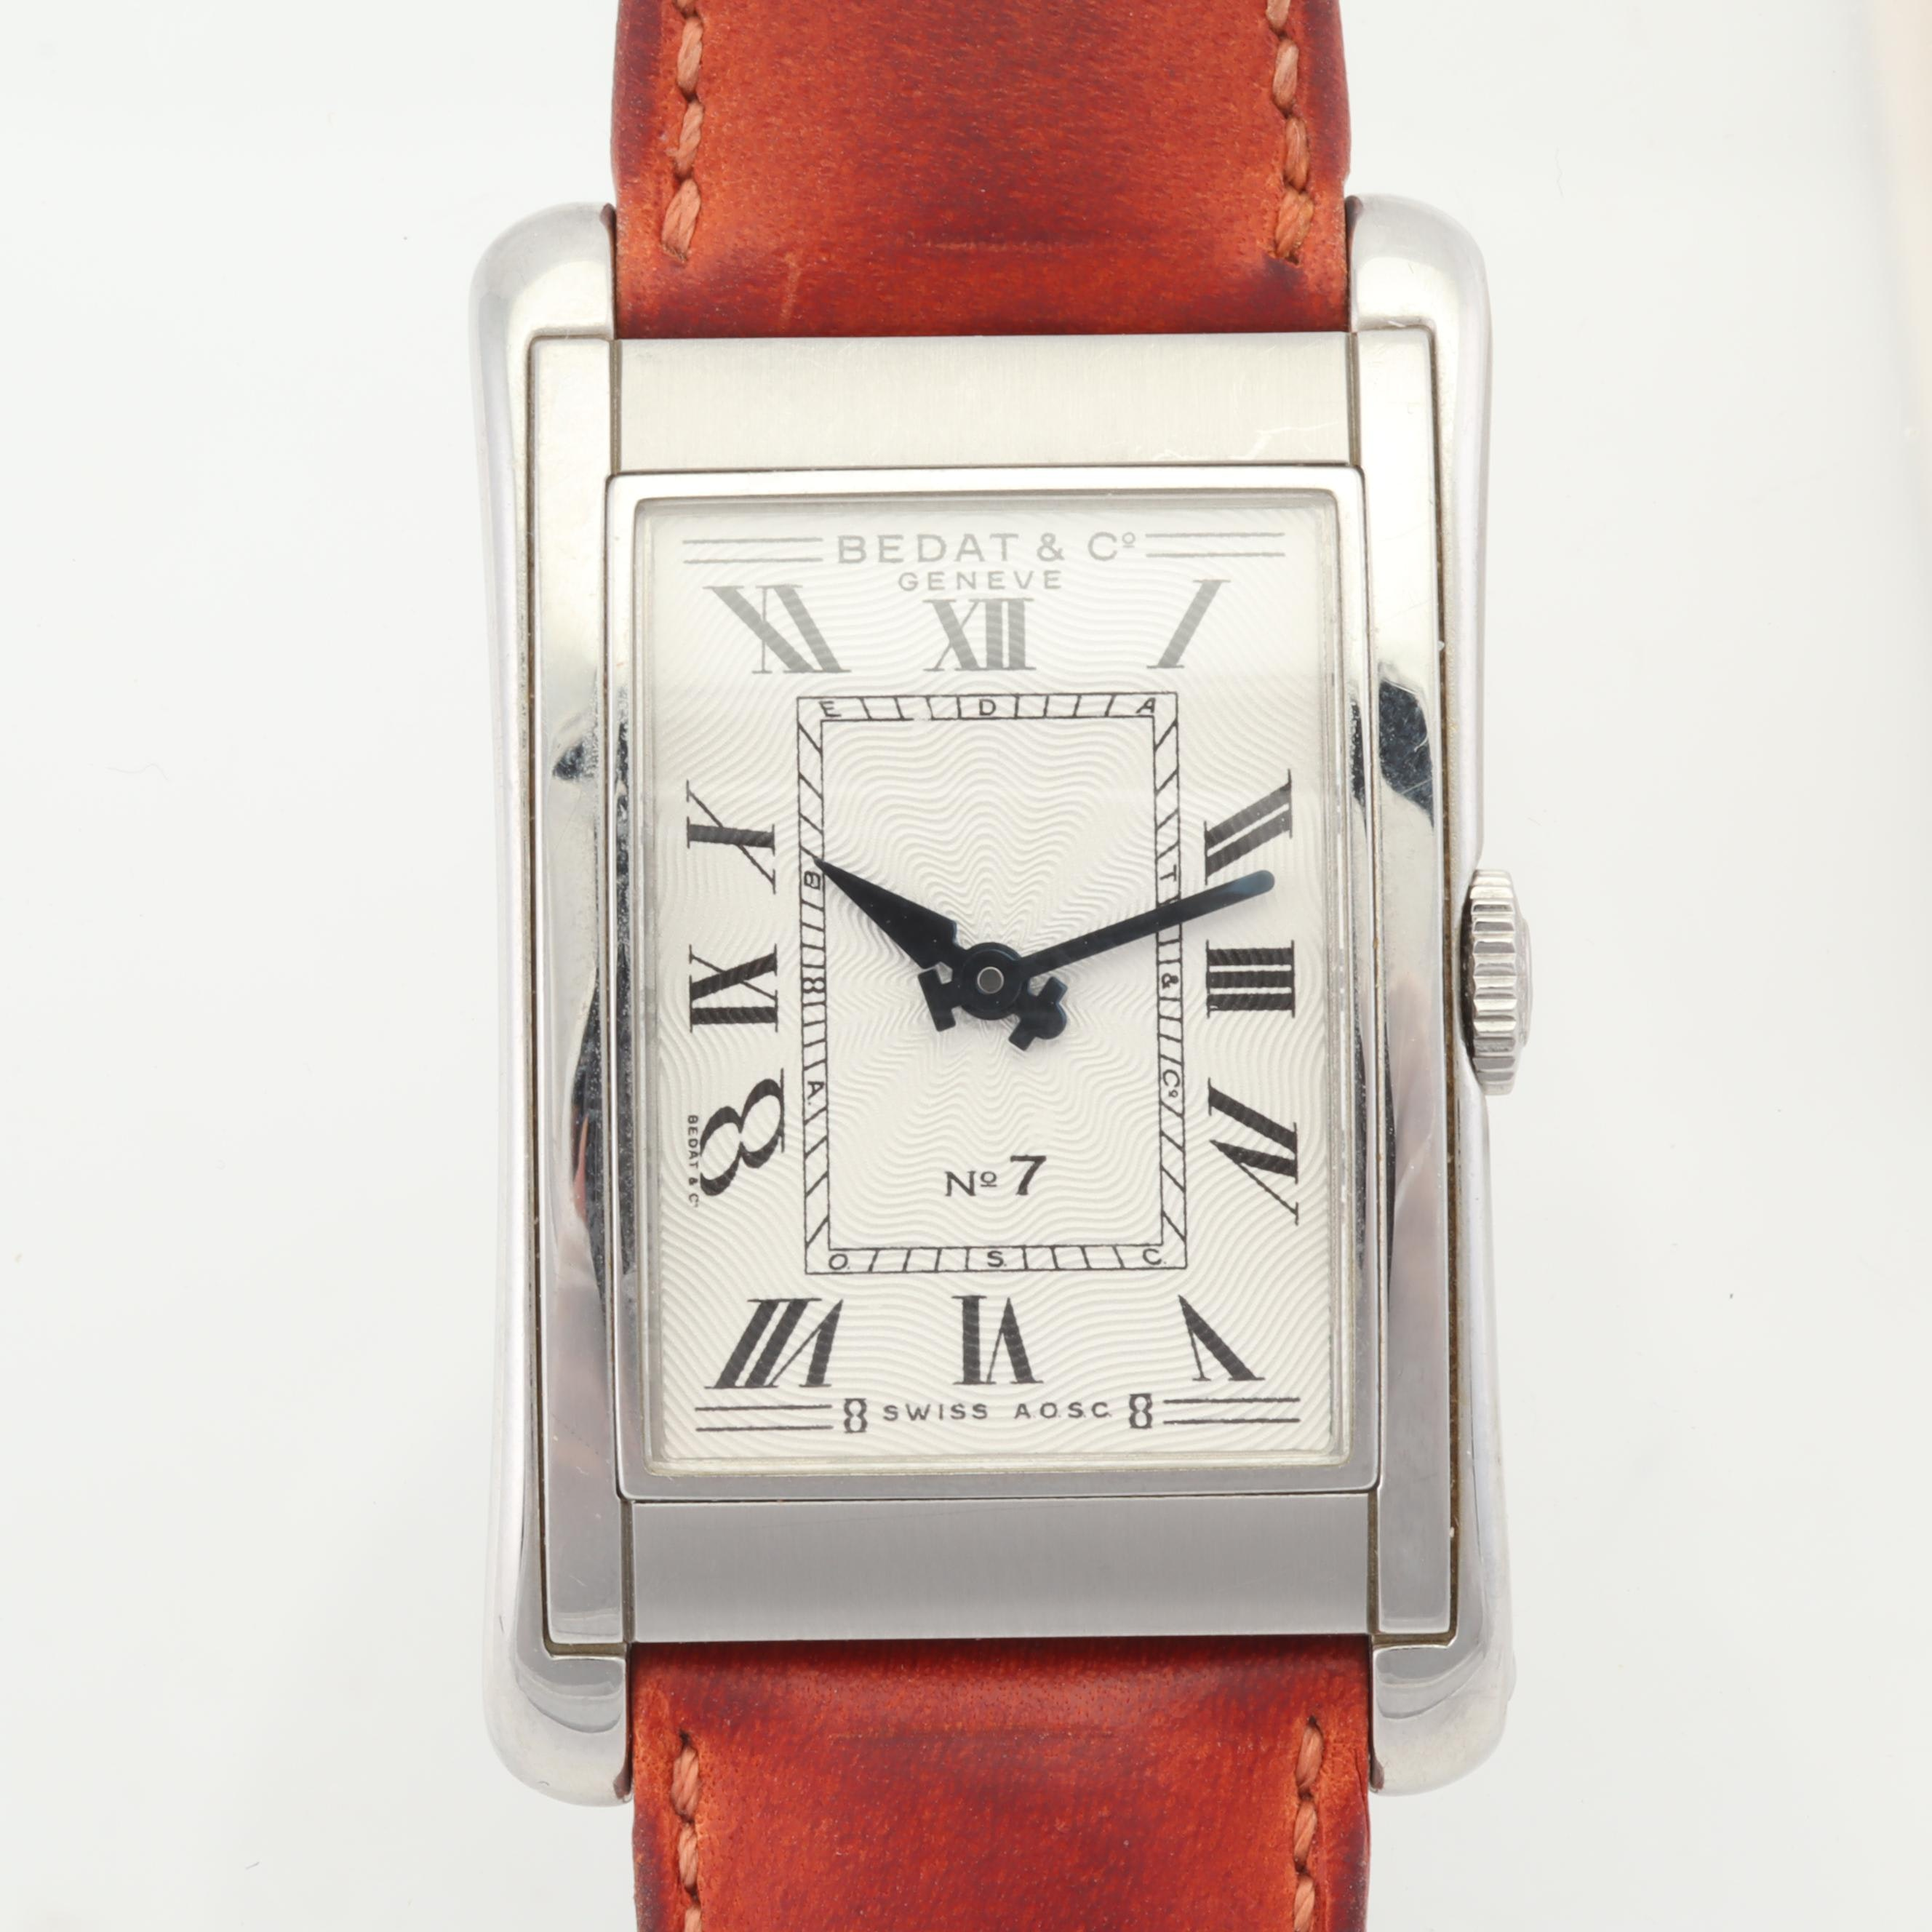 Bedat & Co No. 7 Wristwatch